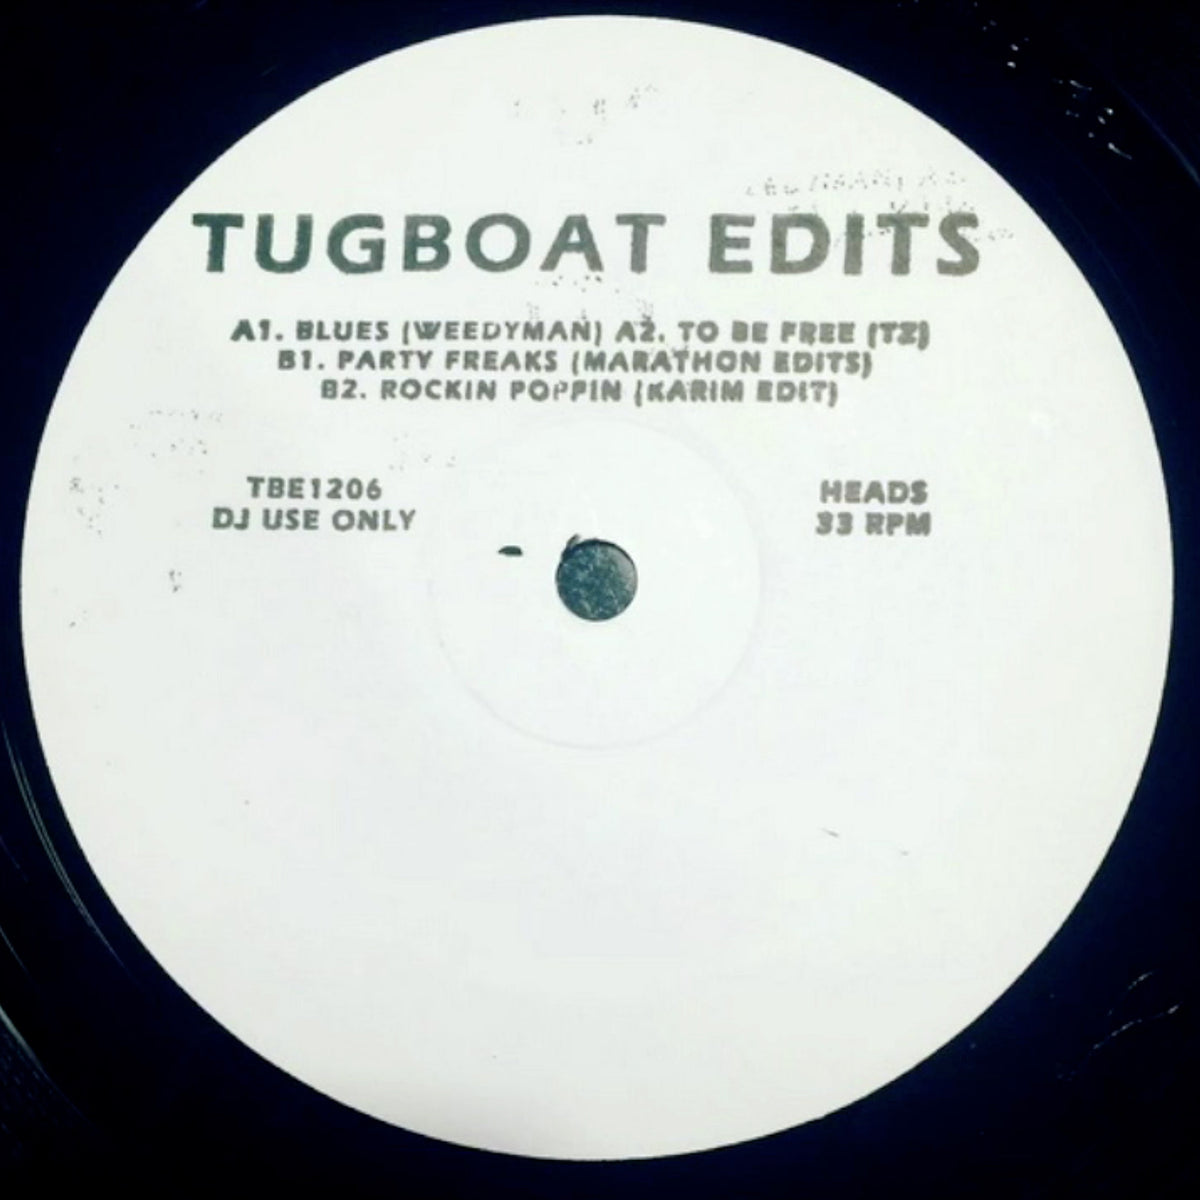 Tugboat Edits: Vol.6 Vinyl 12""